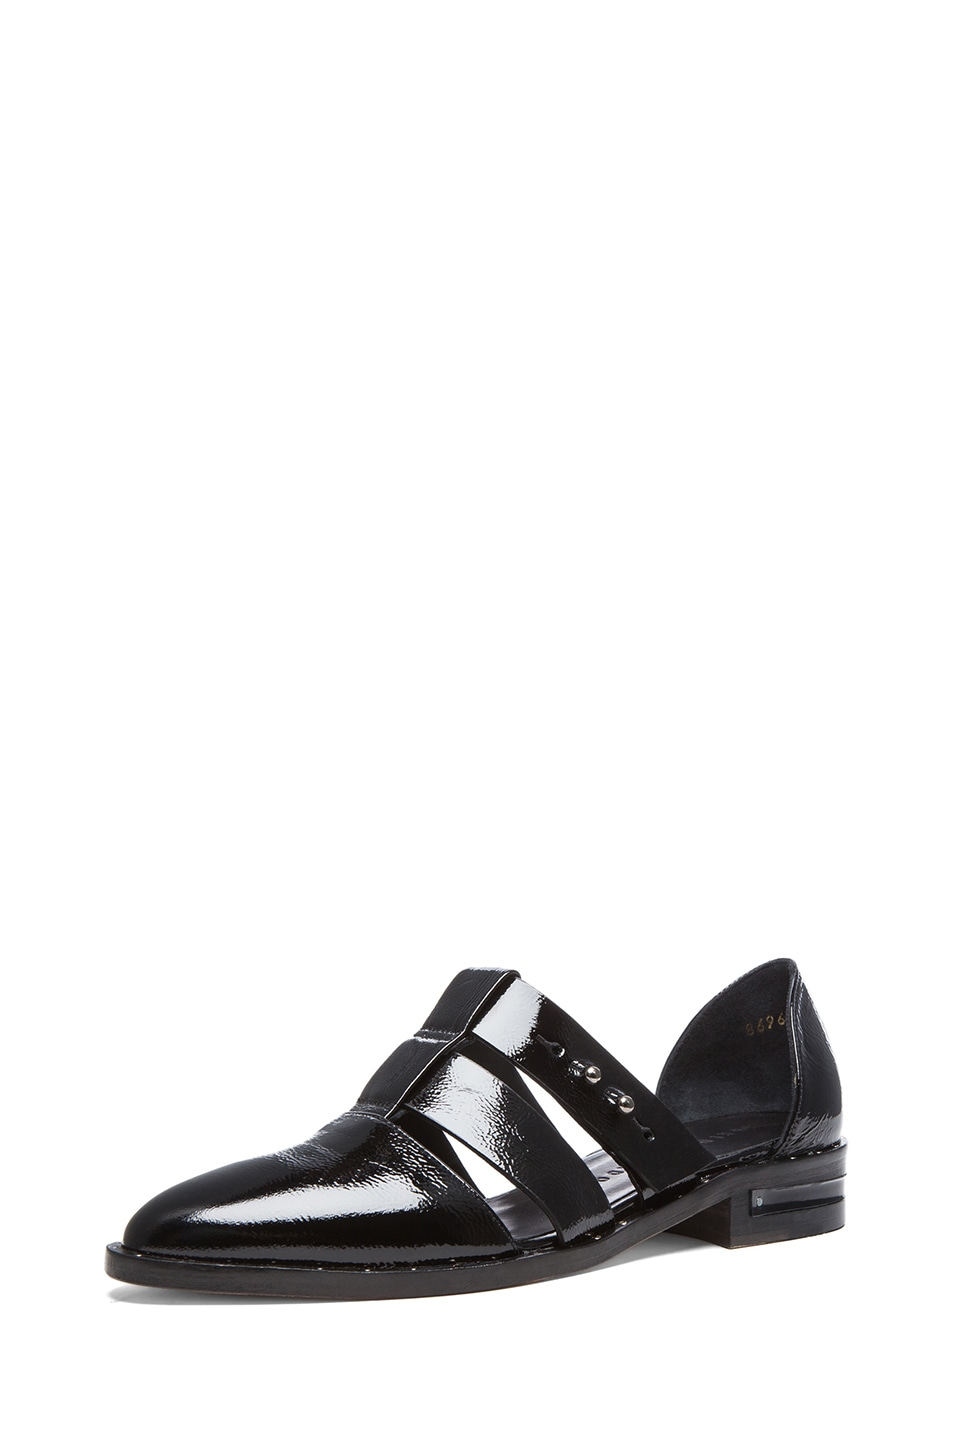 Image 2 of Freda Salvador Lock Patent Leather Oxfords in Black Patent